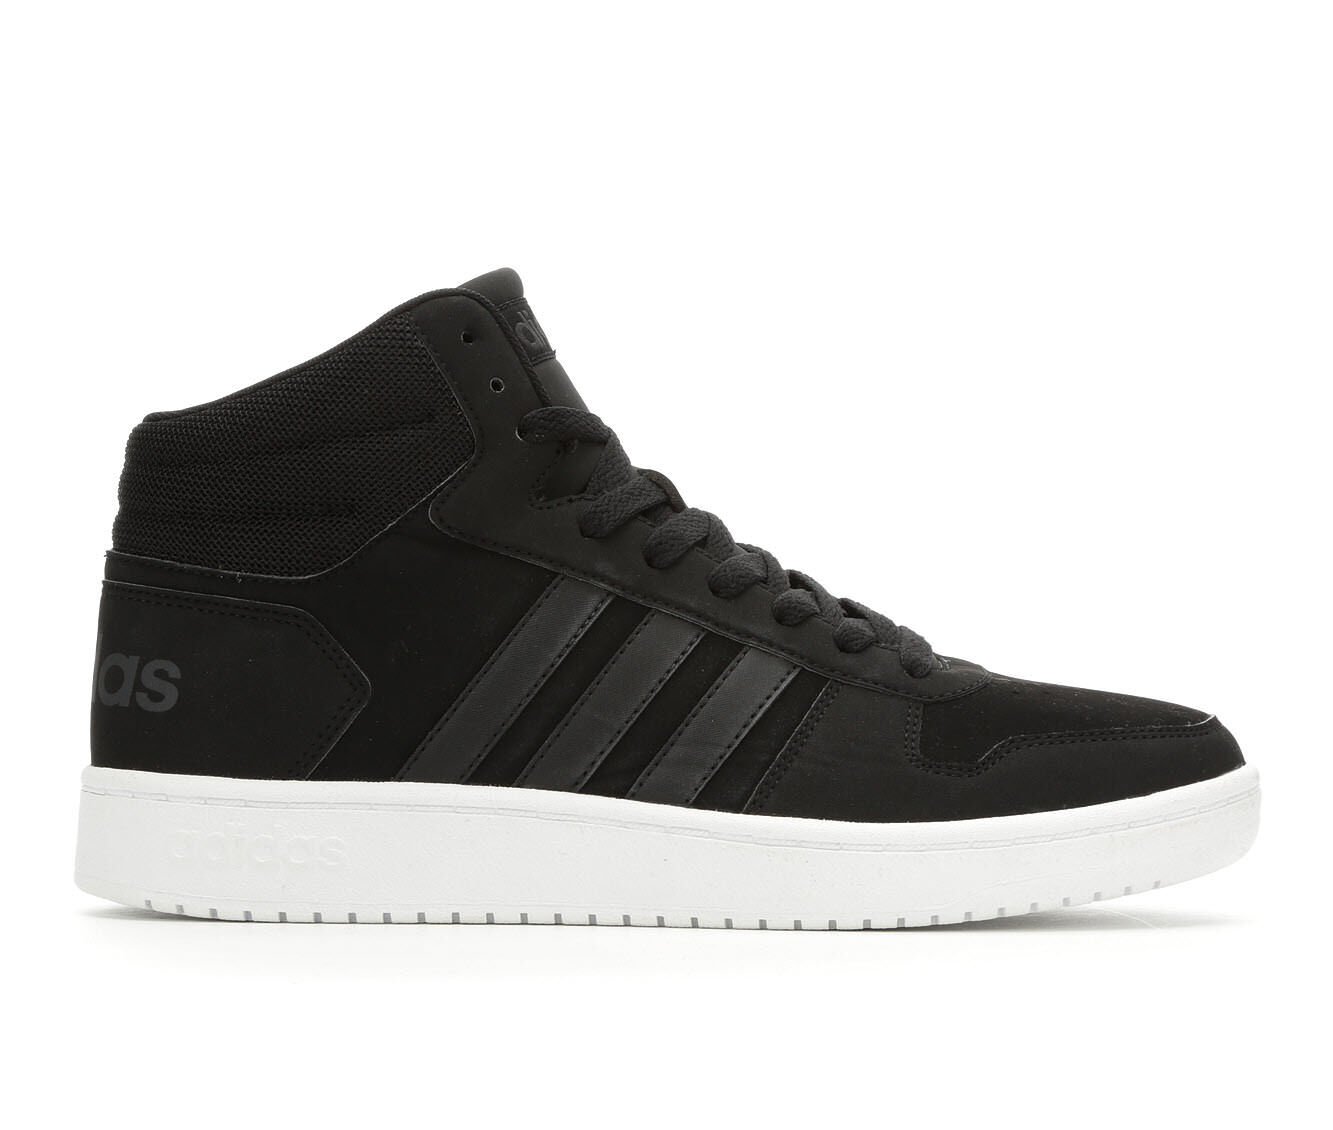 new arrival 6d7e6 6e9b1 ... coupon code for mens adidas hoops 2.0 mid retro sneakers ac085 5ada3